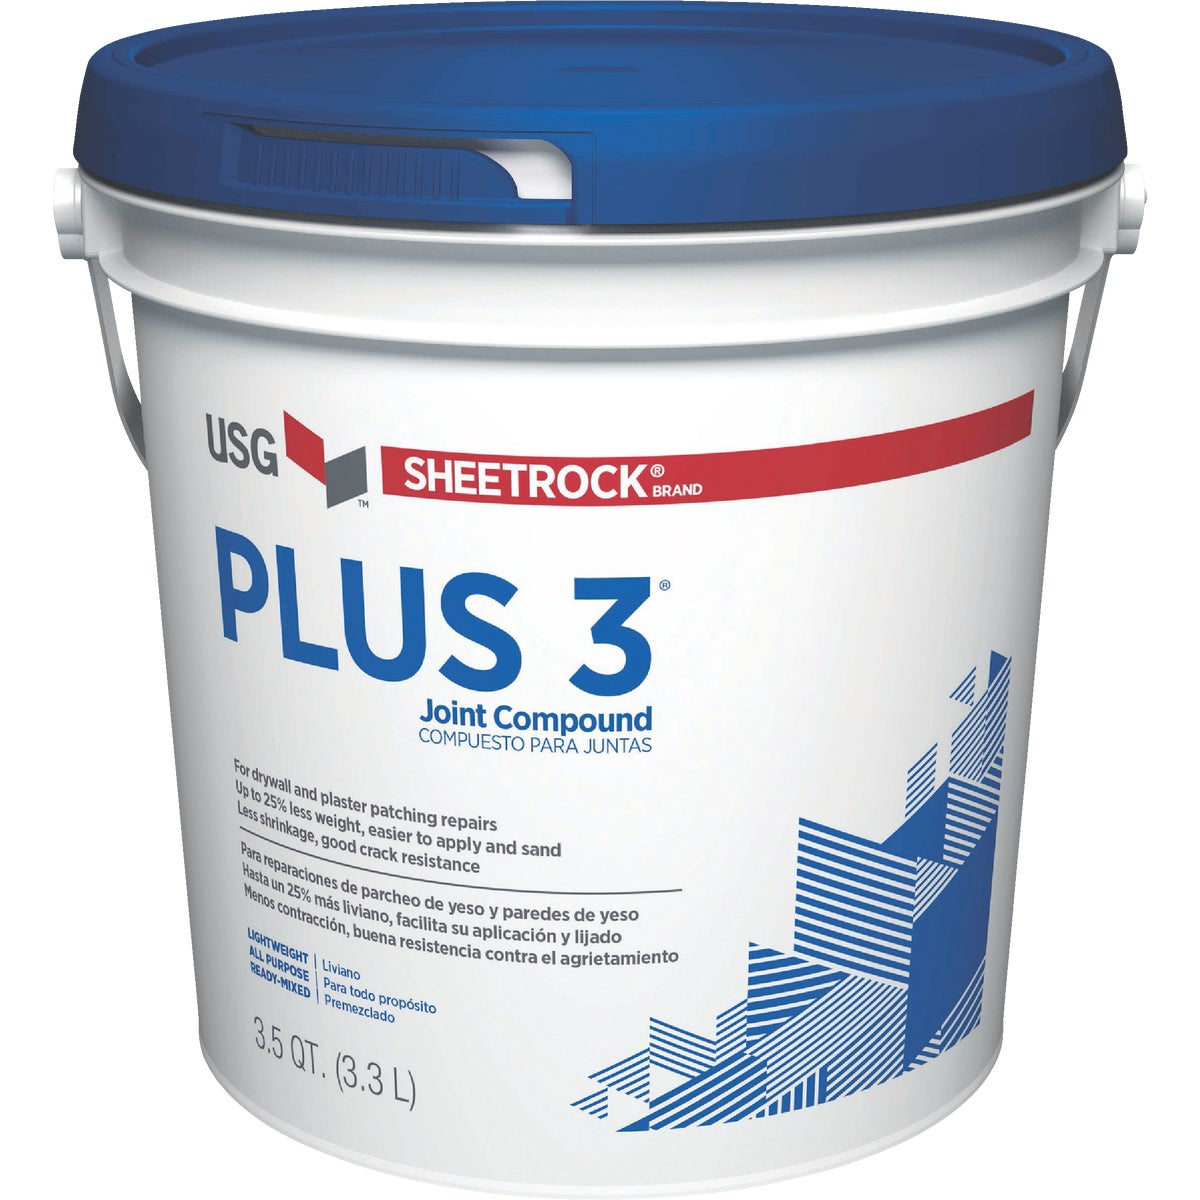 GAL PLUS3 JOINT COMPOUND - 380340 by U S Gypsum